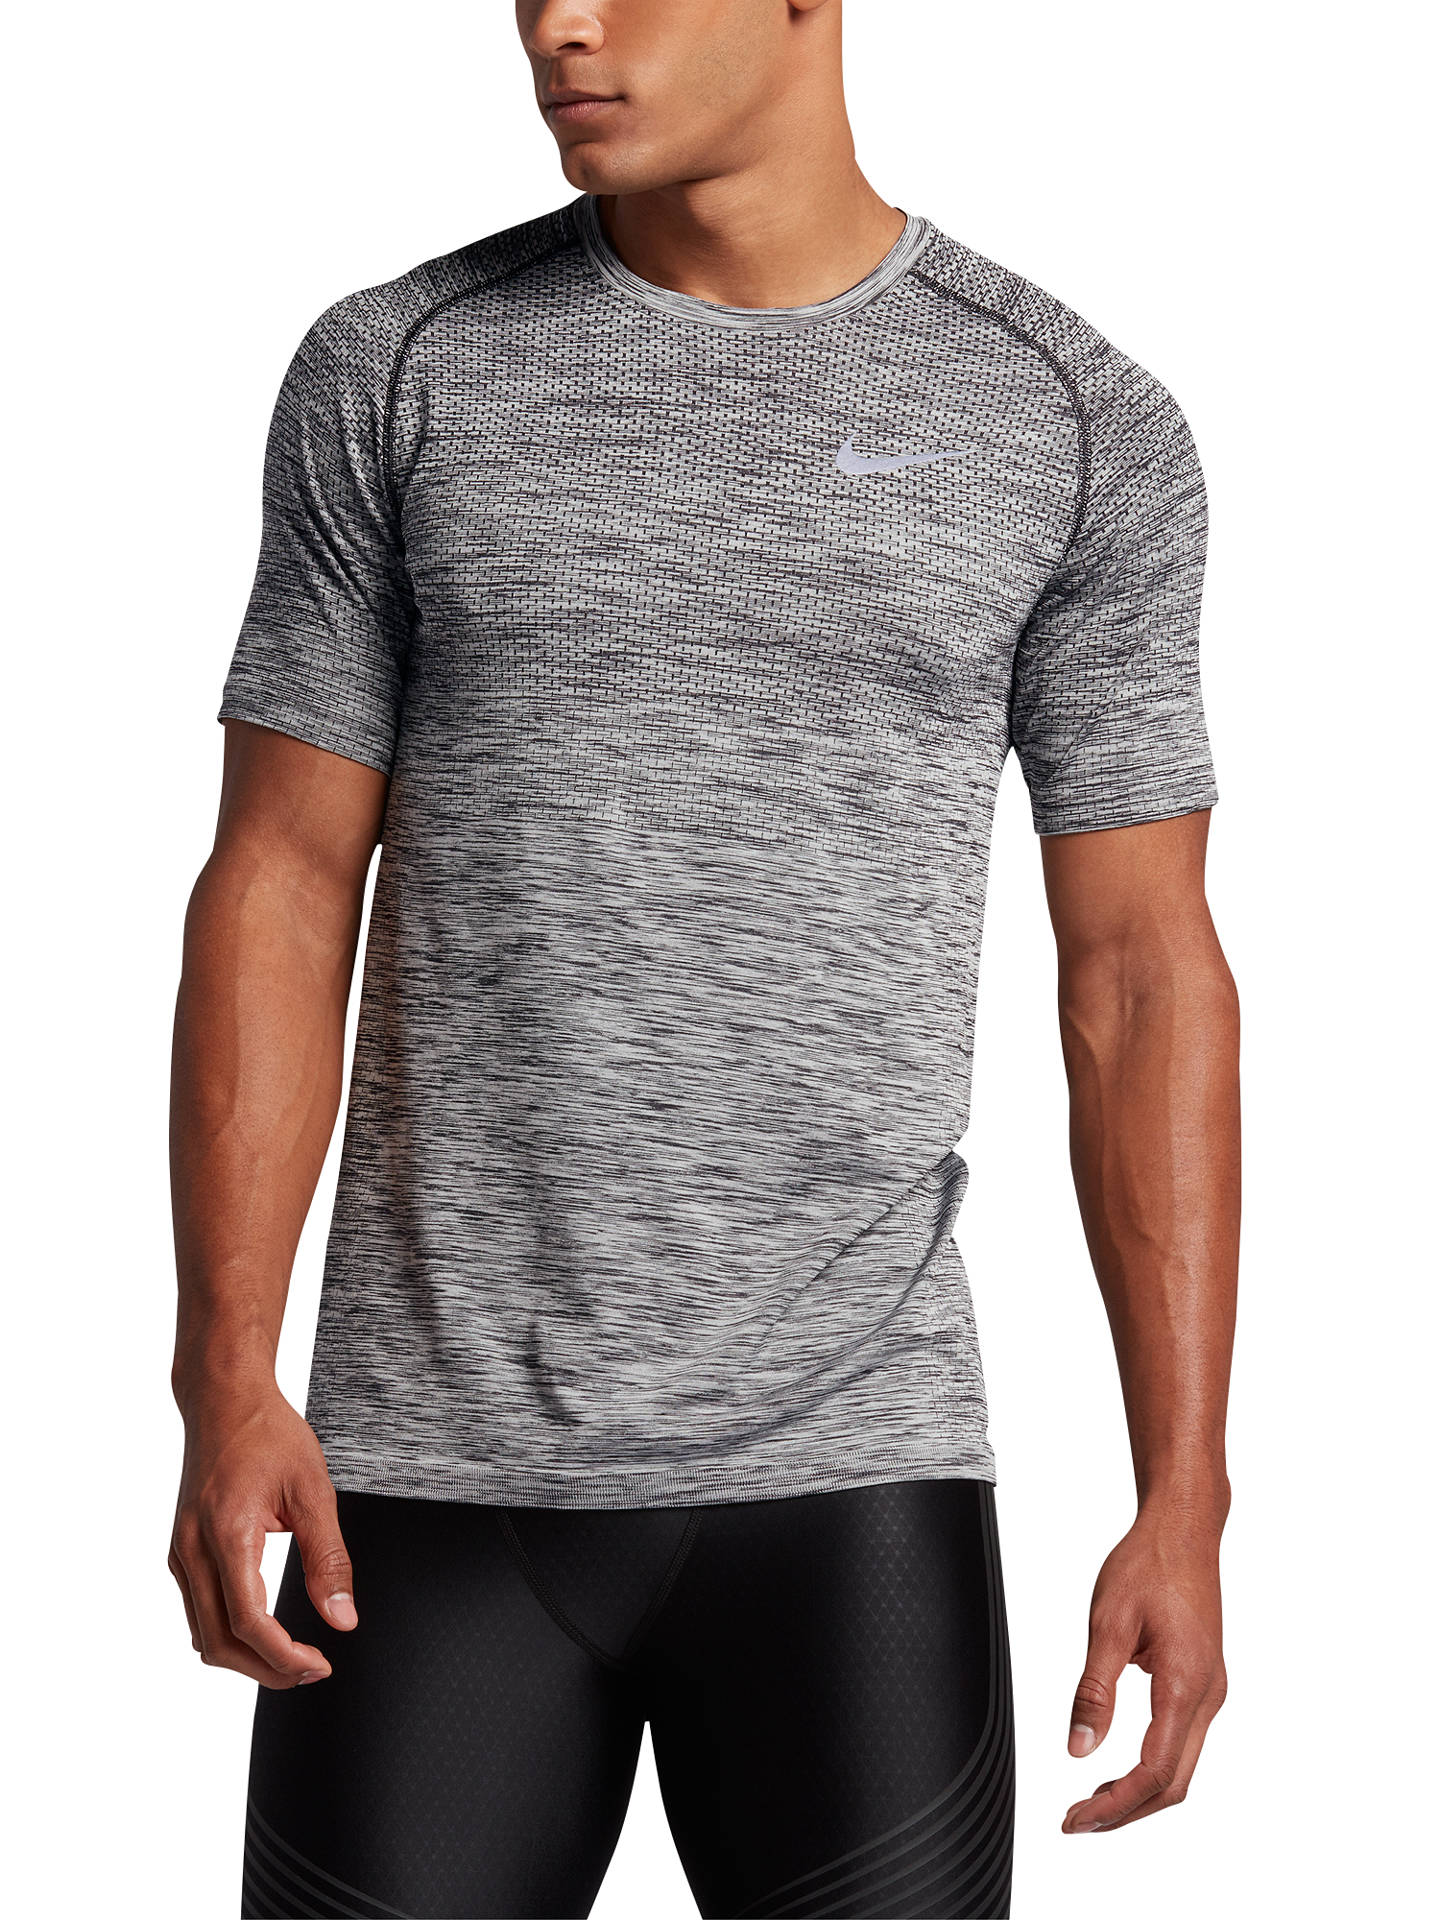 multiple colors genuine shoes united states Nike Dri-FIT Knit Short Sleeve Running T-Shirt, Black/Silver ...